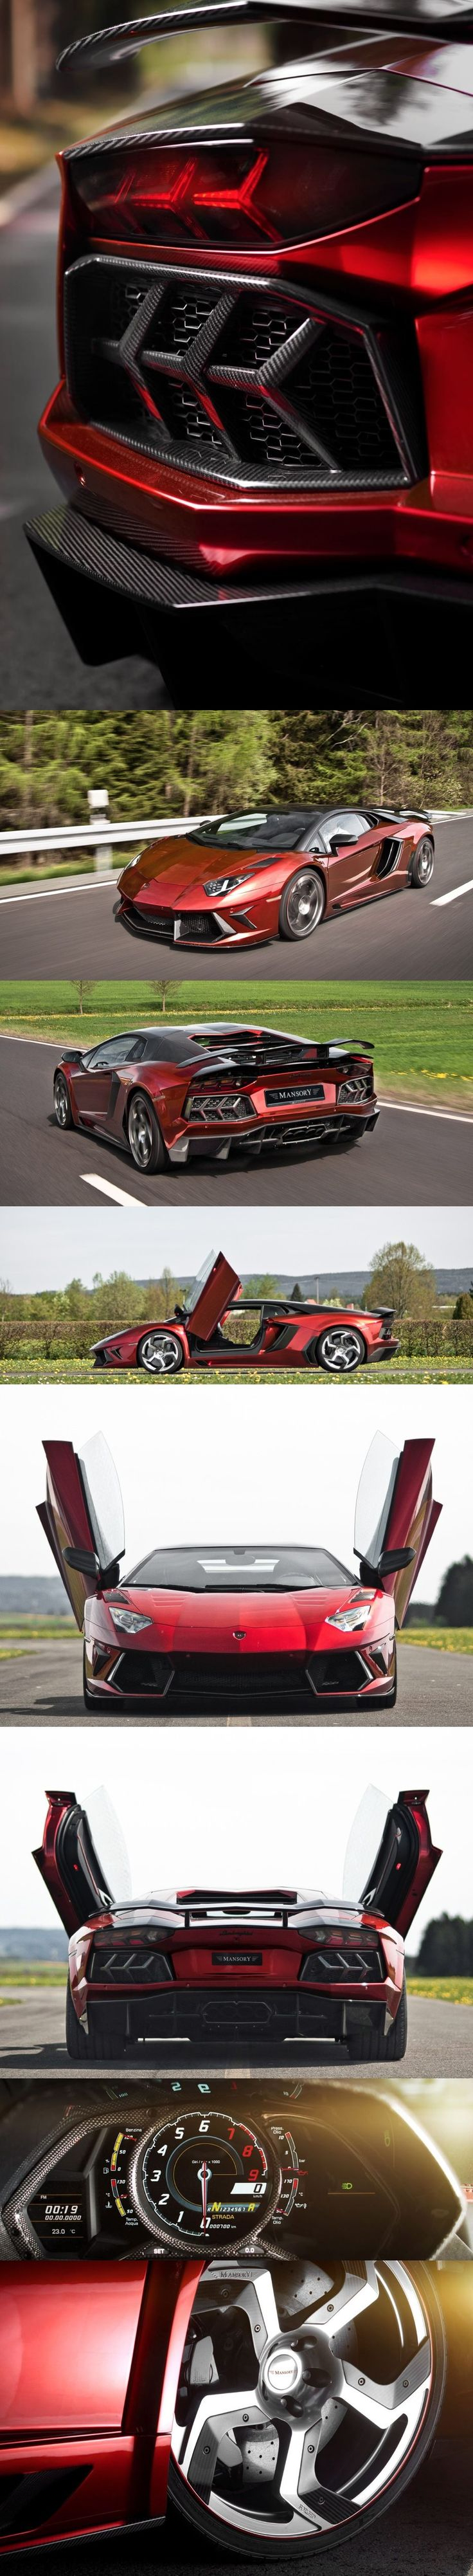 144 Best Auta Images On Pinterest Cool Cars Athlete And Import Gt Galleries For How To Draw Shear Force Bending Moment Diagram Lamborghini Aventador